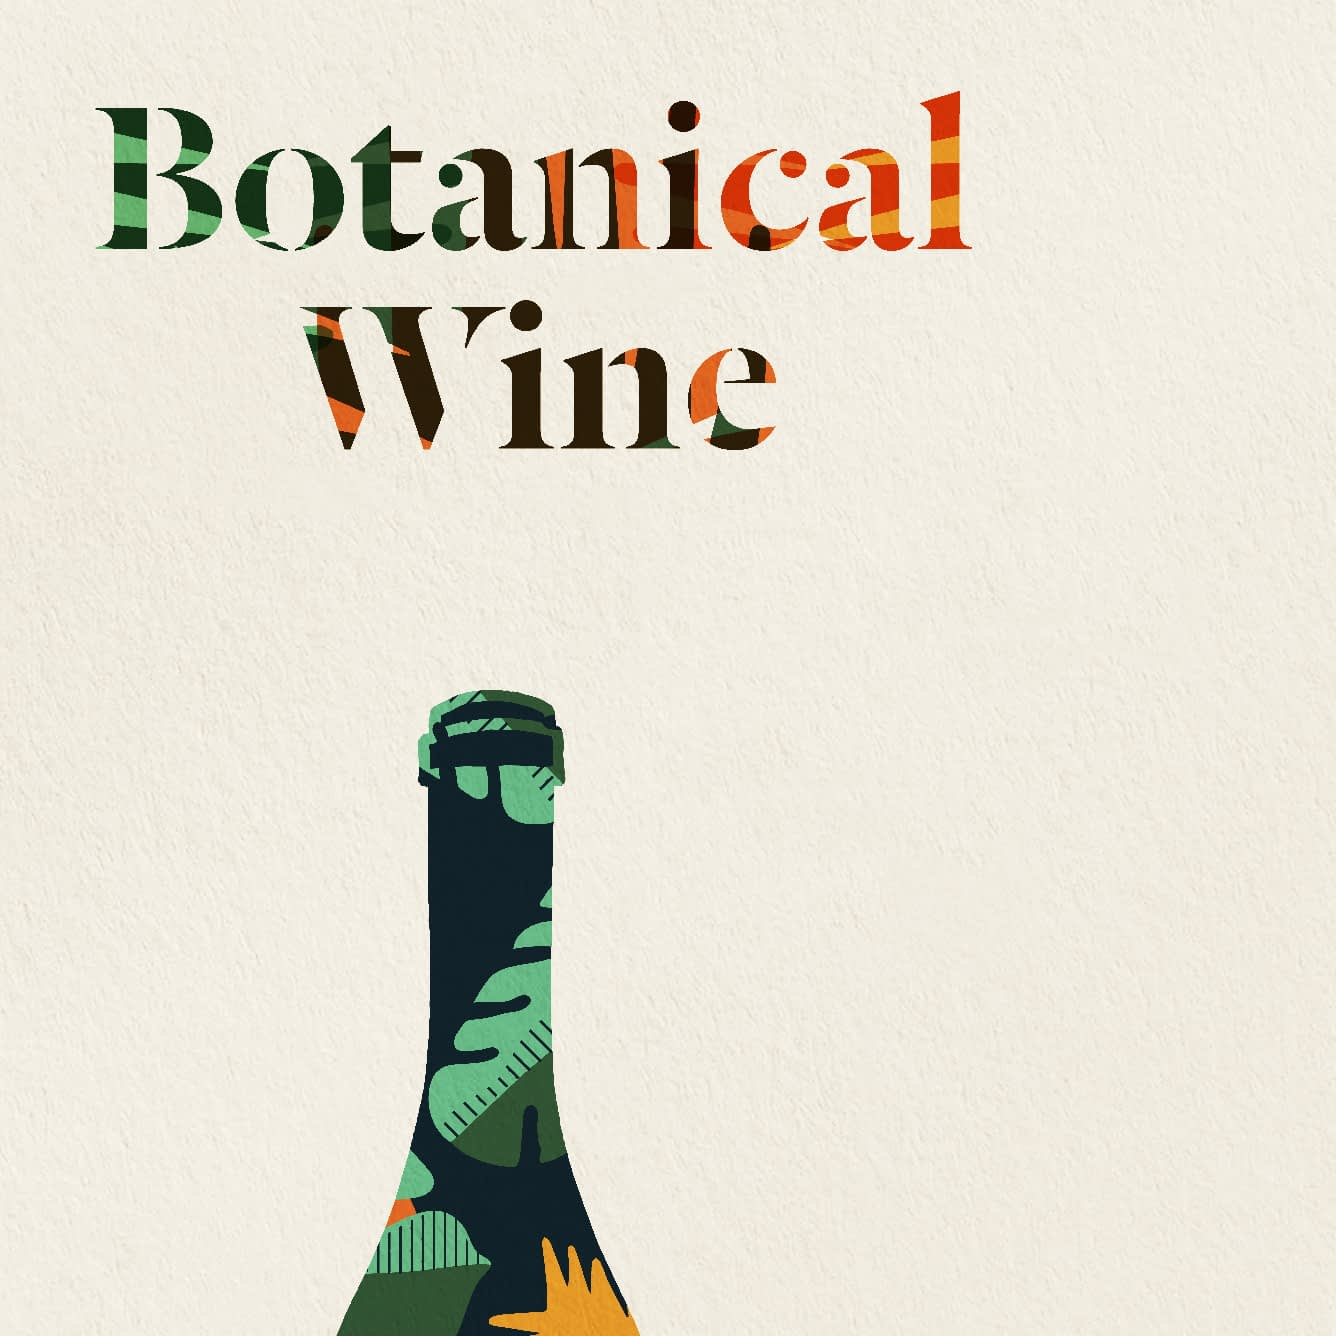 Botanical Wine Print zoomed